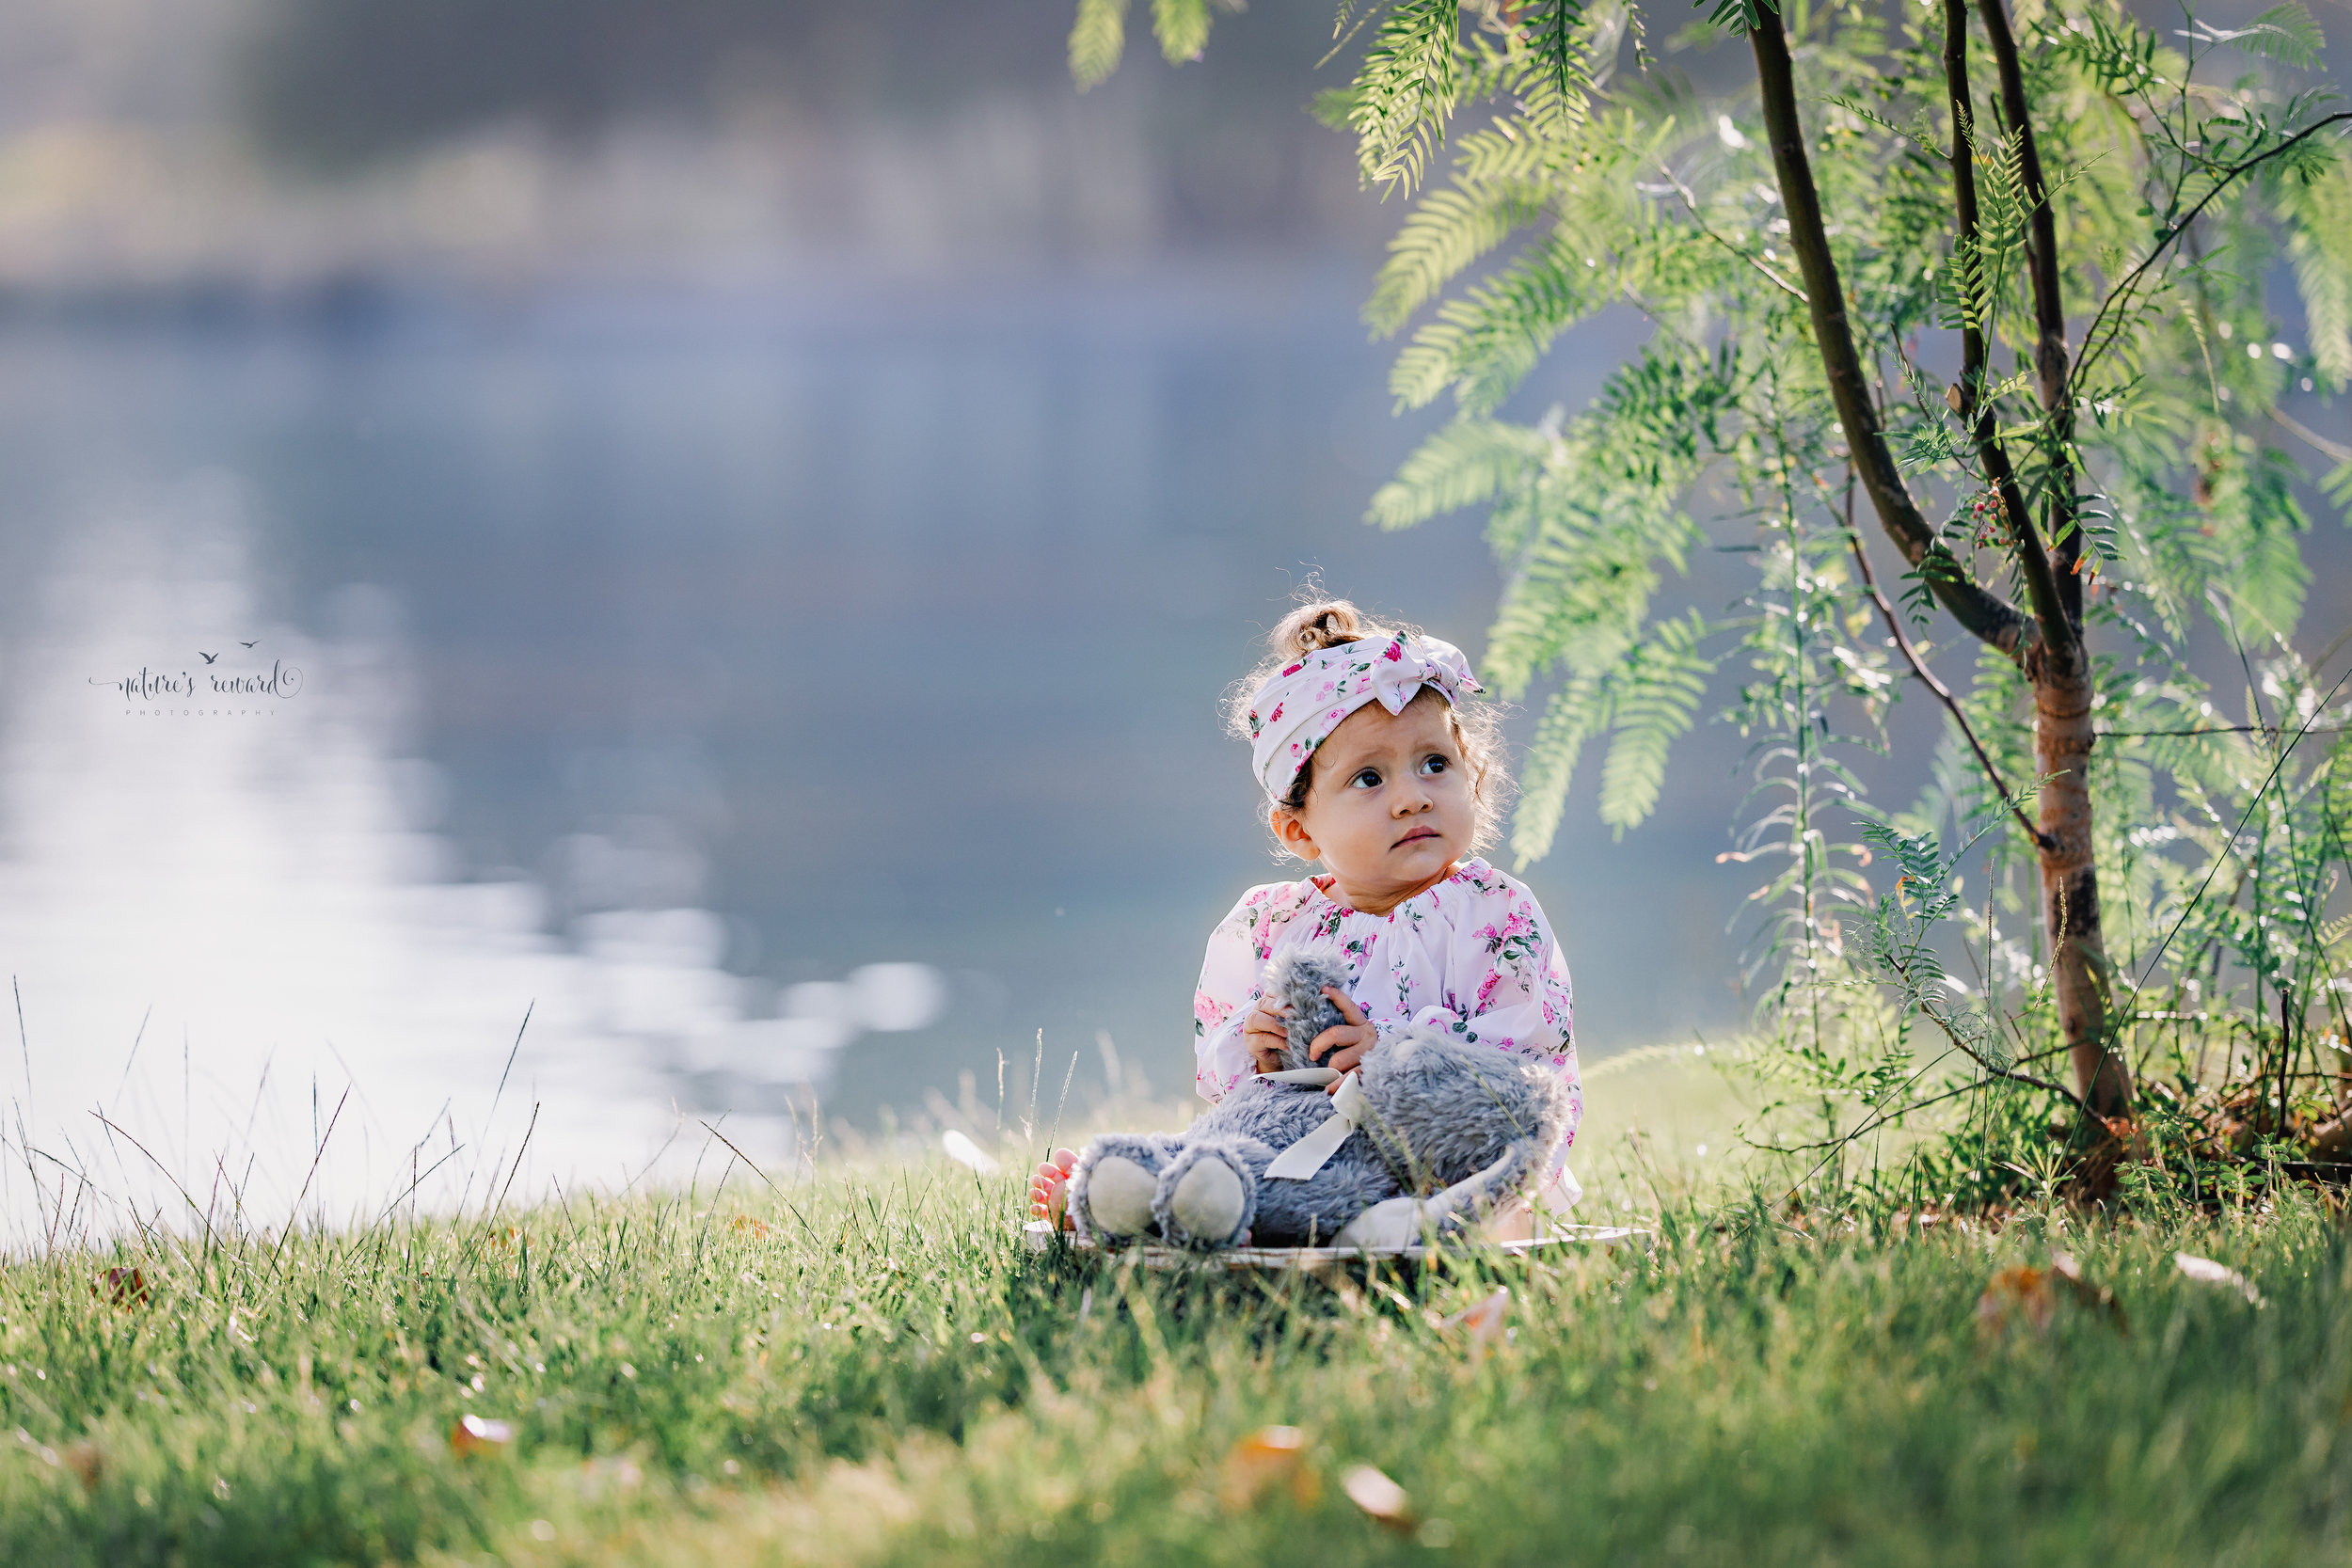 Beautiful Baby in a white floral romper during her sitter session near a lake in this portrait by Nature's Reward Photography.